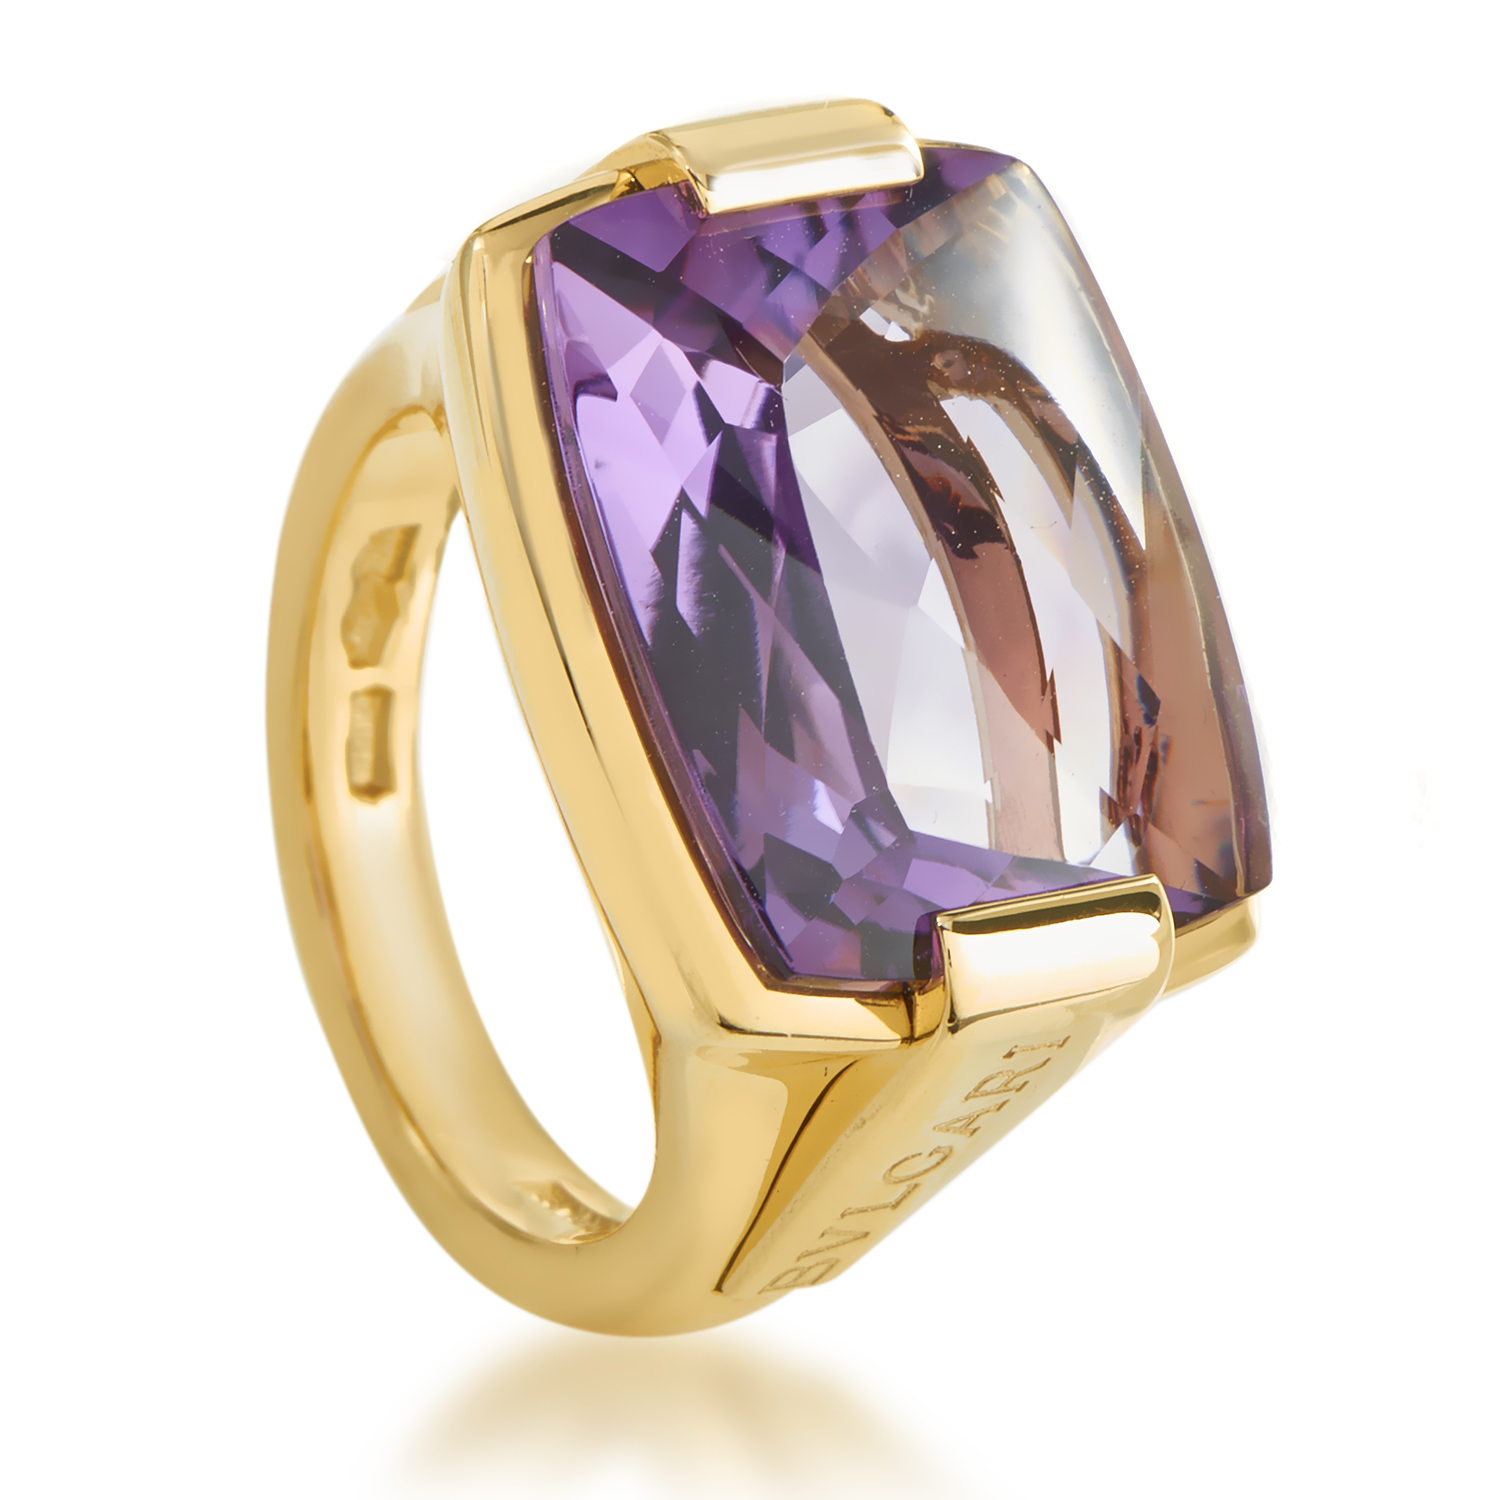 Bvlgari Metropolis 18K Yellow Gold Amethyst Women's Ring